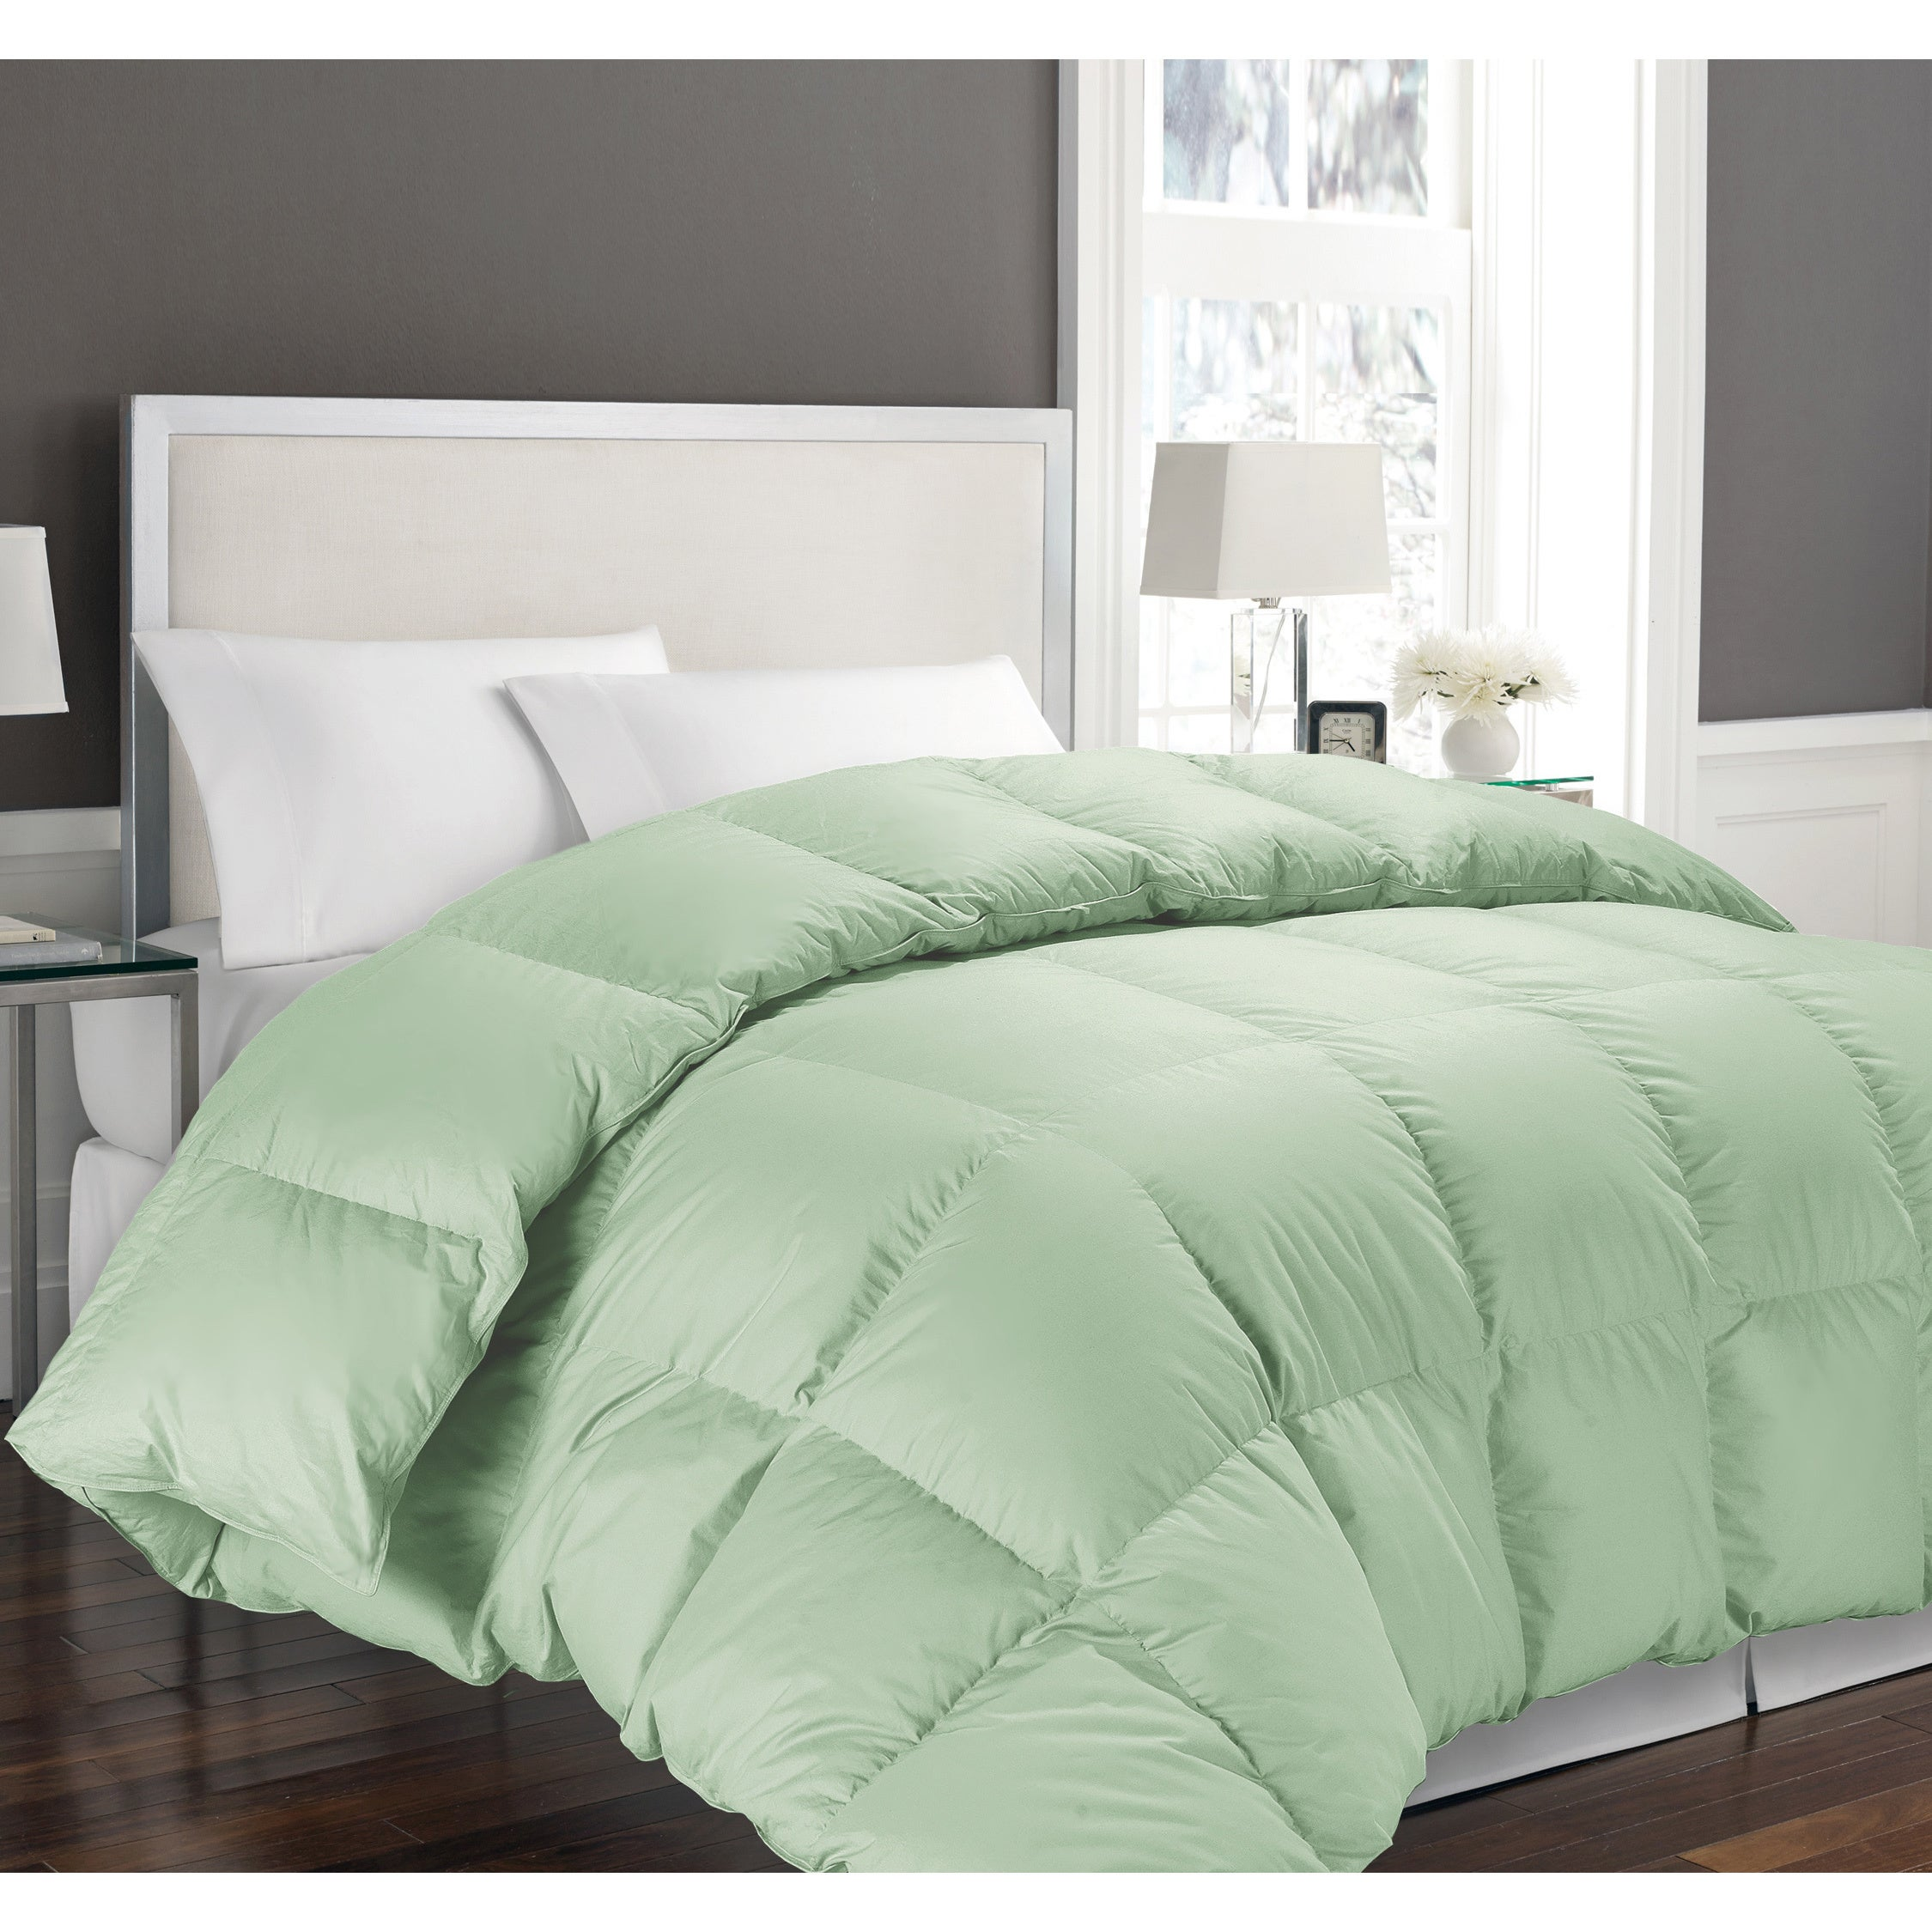 alternative insertplush product comforter fillcircle duvet plush quilted white fill basic circle comforterduvet microfiber down beyond insert queen